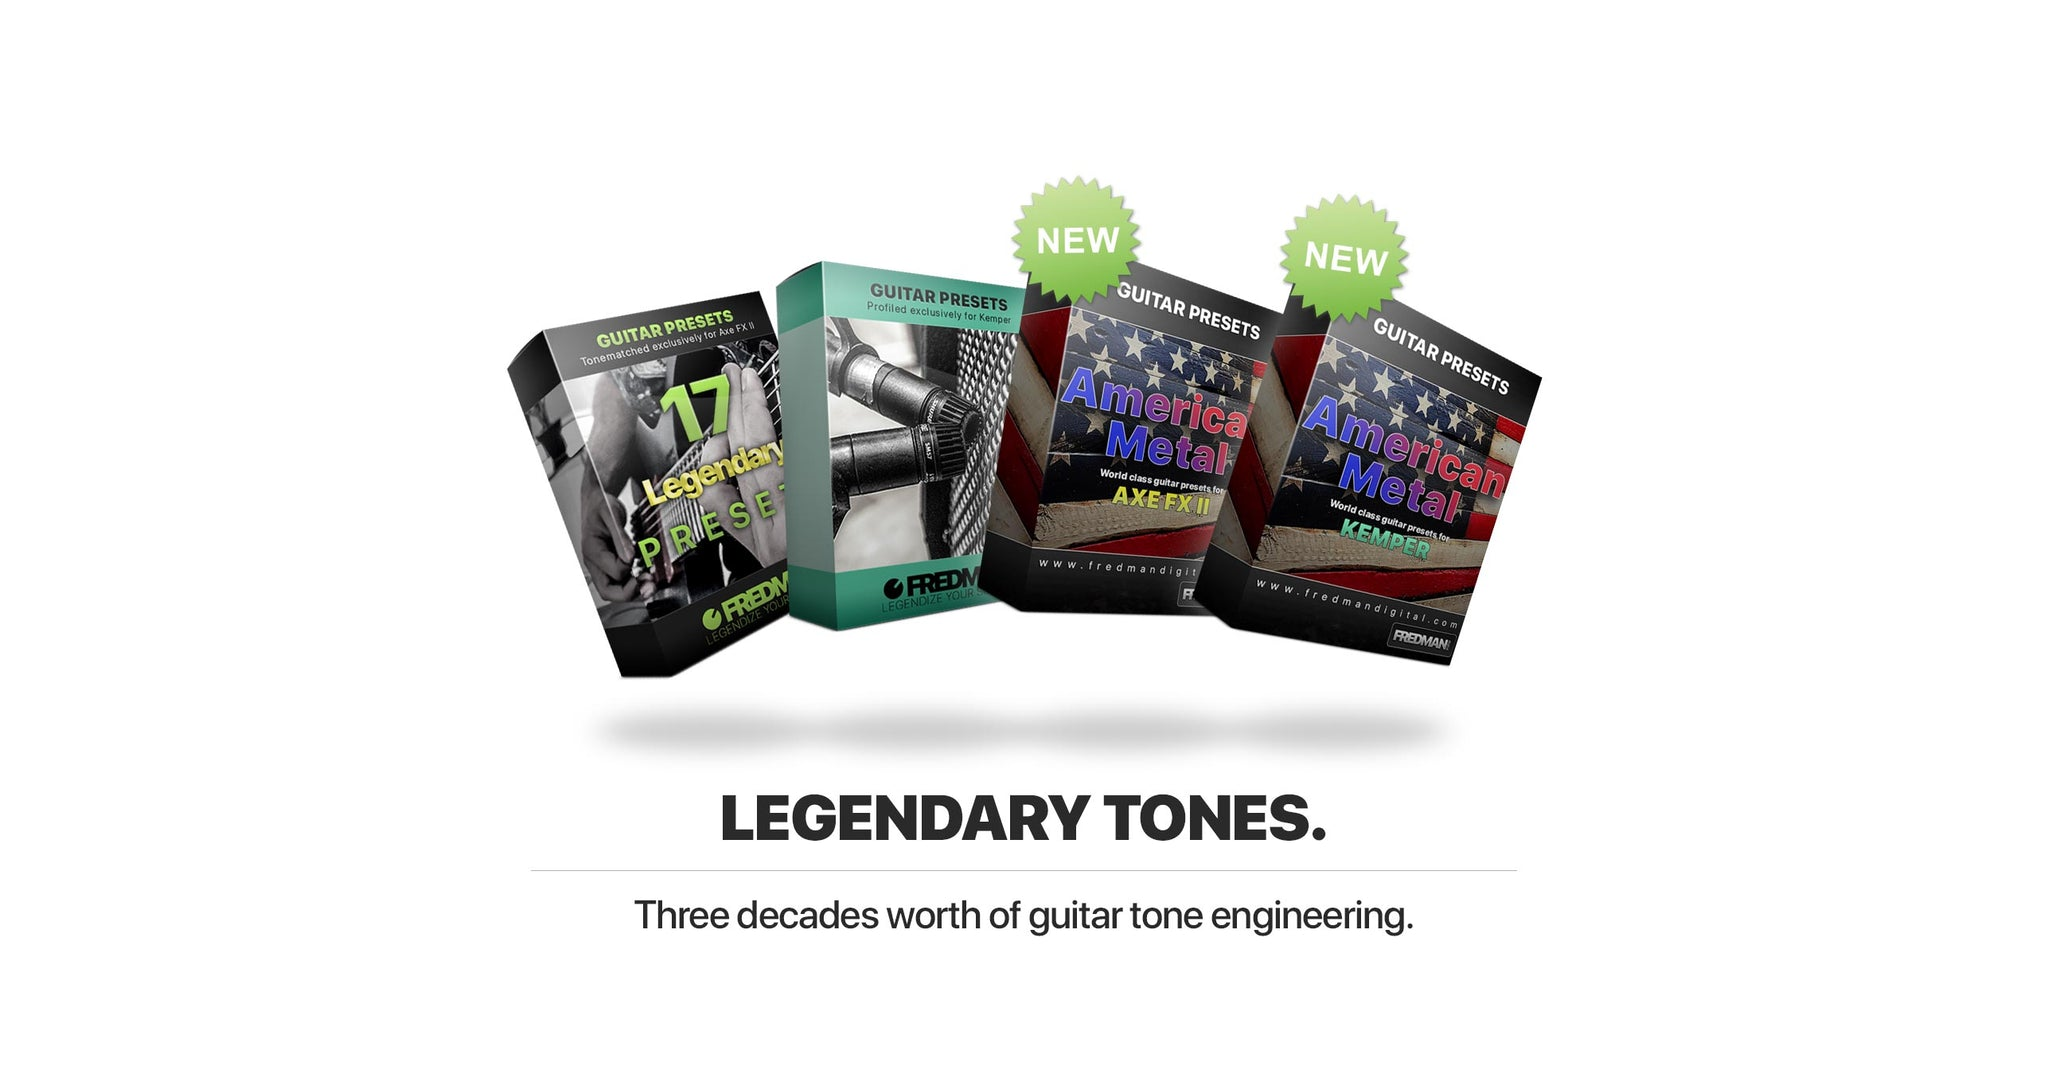 New presets for Axe FX & Kemper!